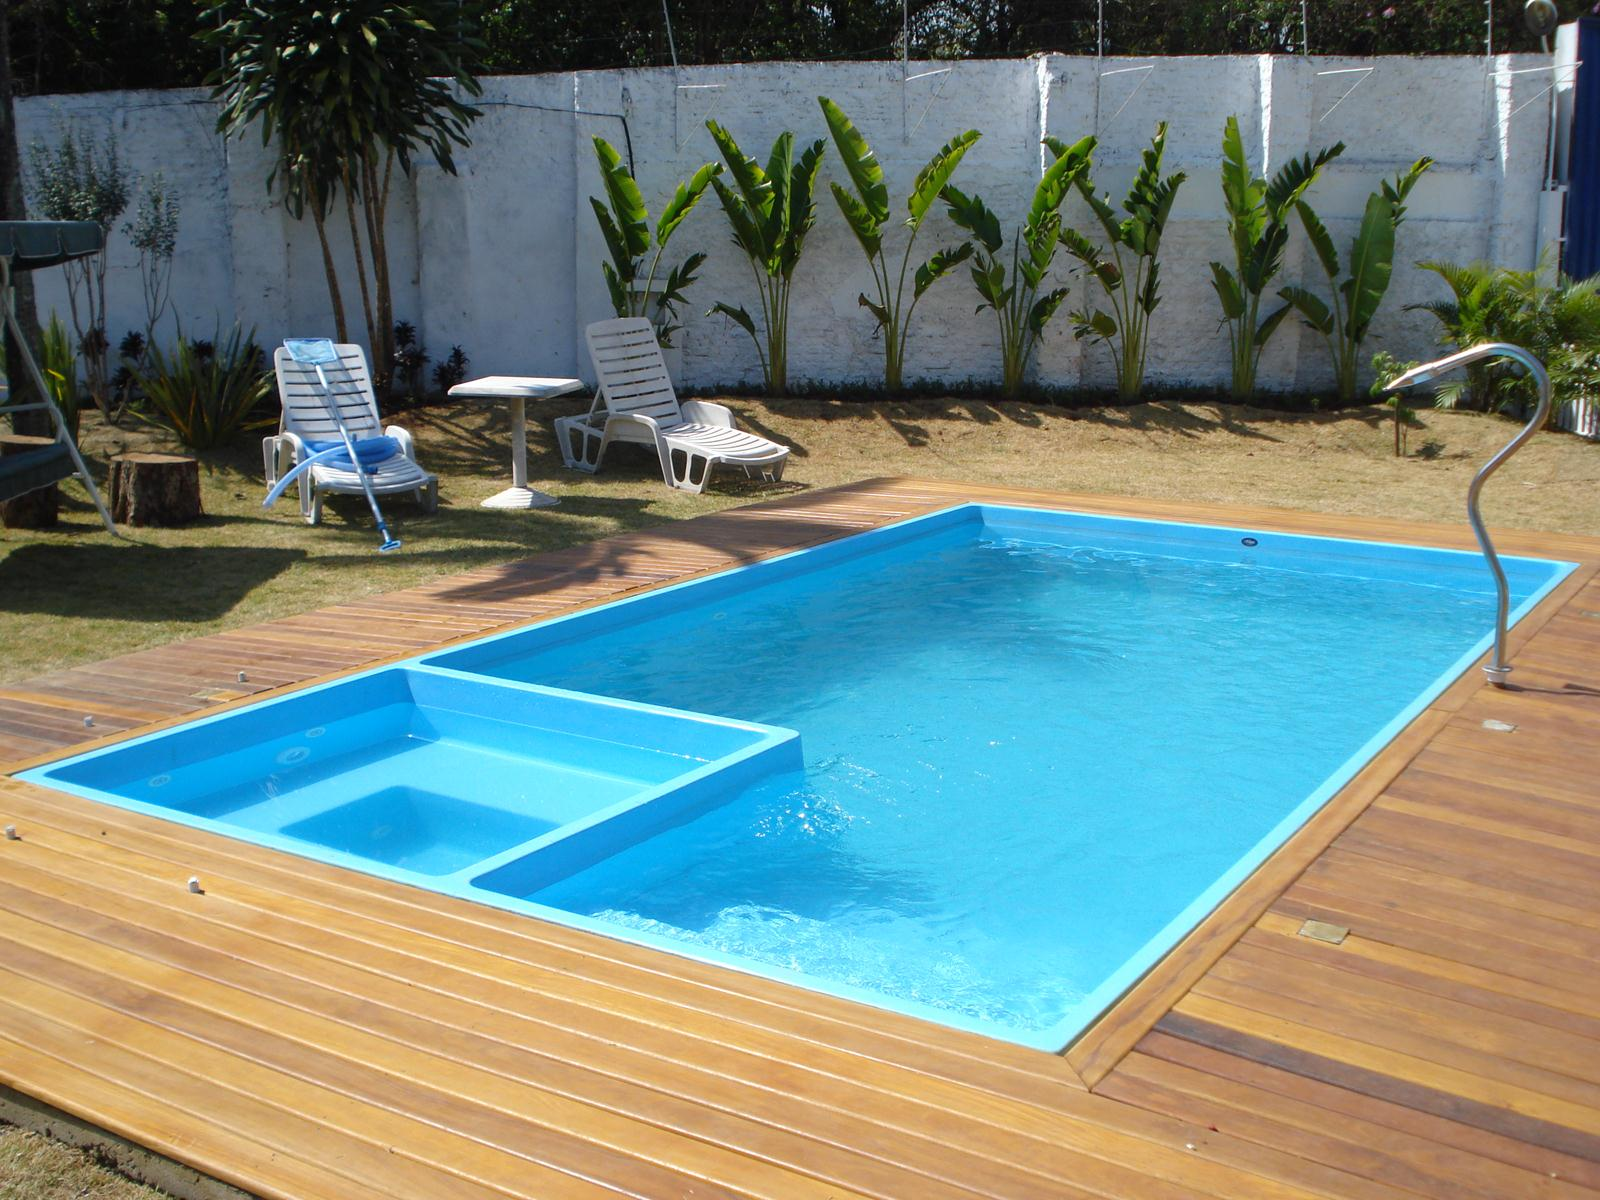 Tinta para piscina pre os onde comprar for Piscina u central